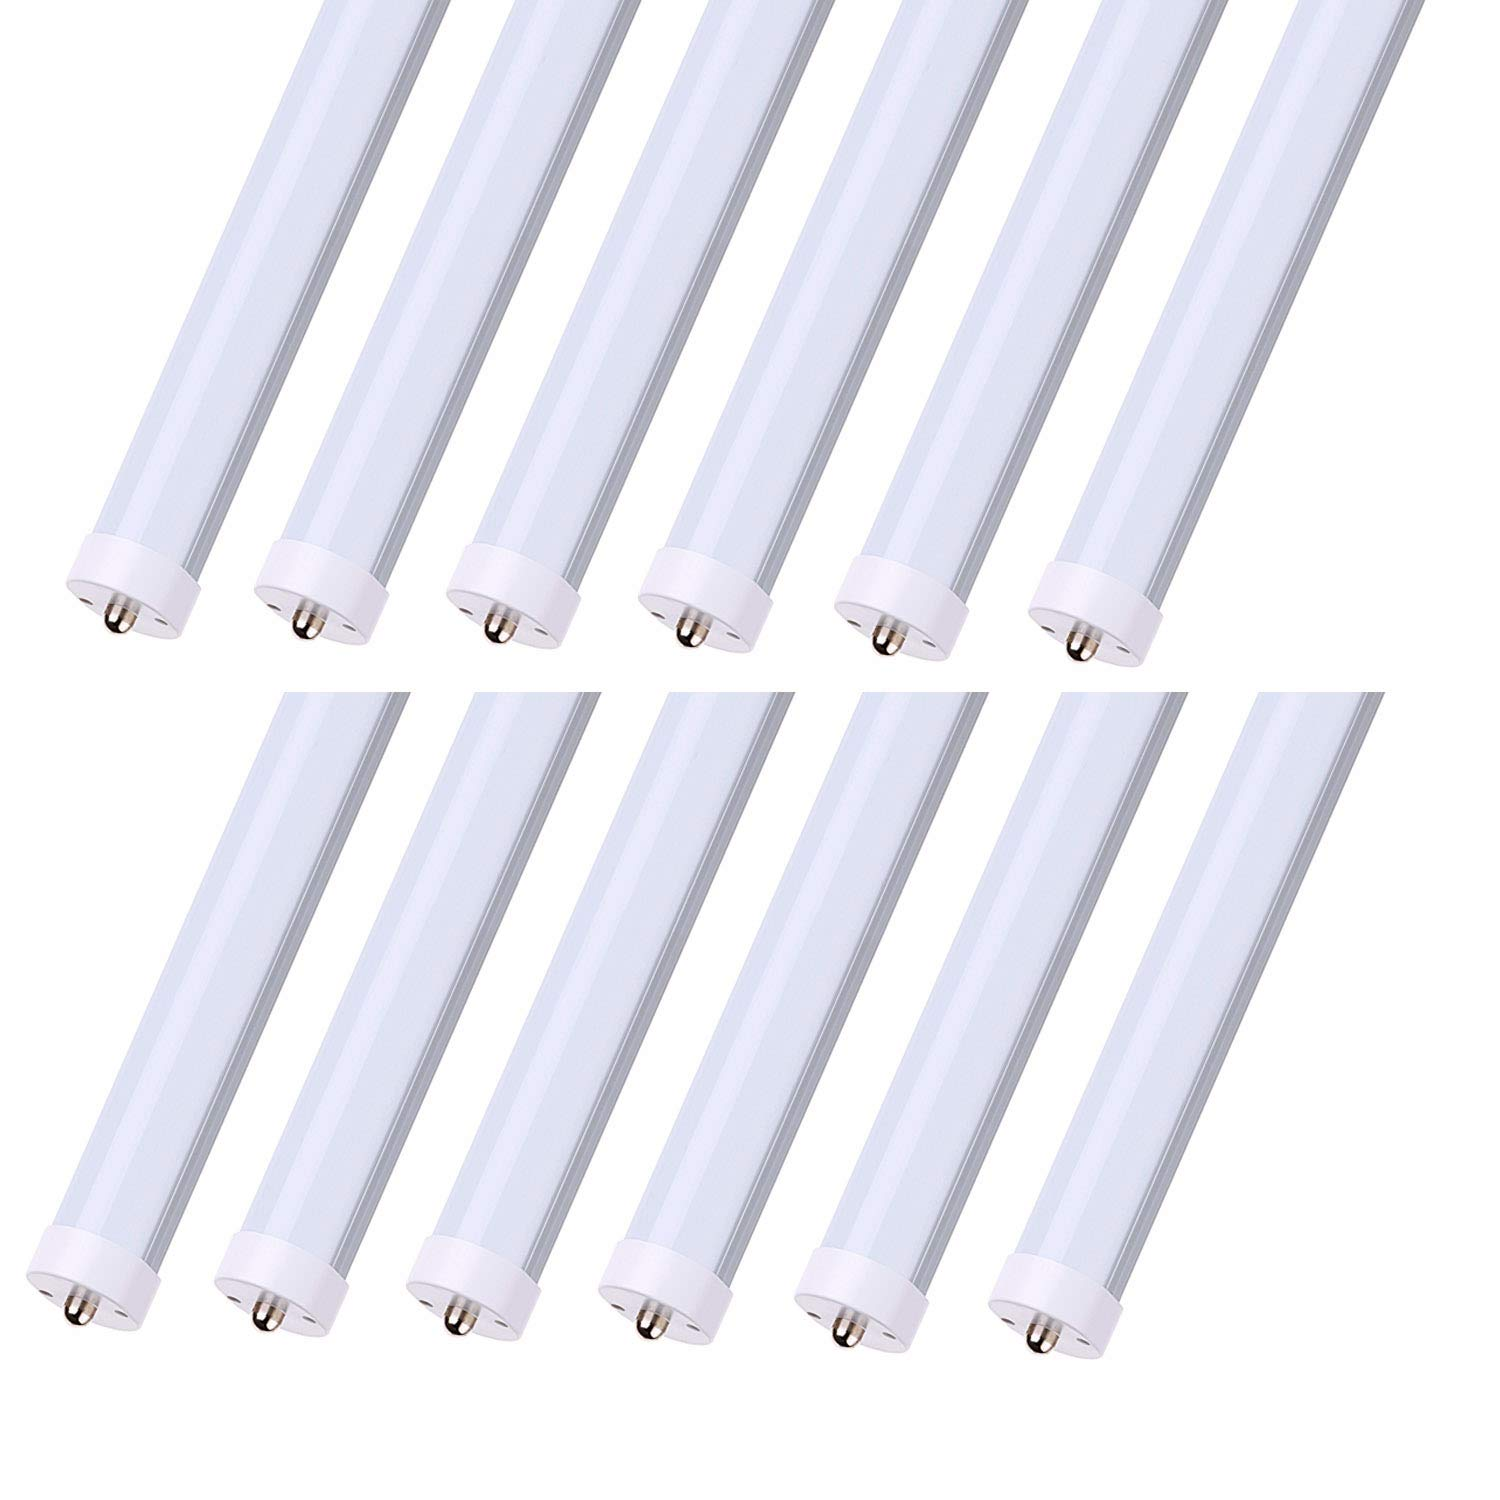 CNSUNWAY Lighting 8FT LED Bulb, 45W(100W Equivalent), Dual-Ended Power, Bypass Ballast, 4800 Lumens, 6000K Cool White, Frosted Cover, 8ft LED Bulbs for Fluorescent Fixtures(12-Pack)